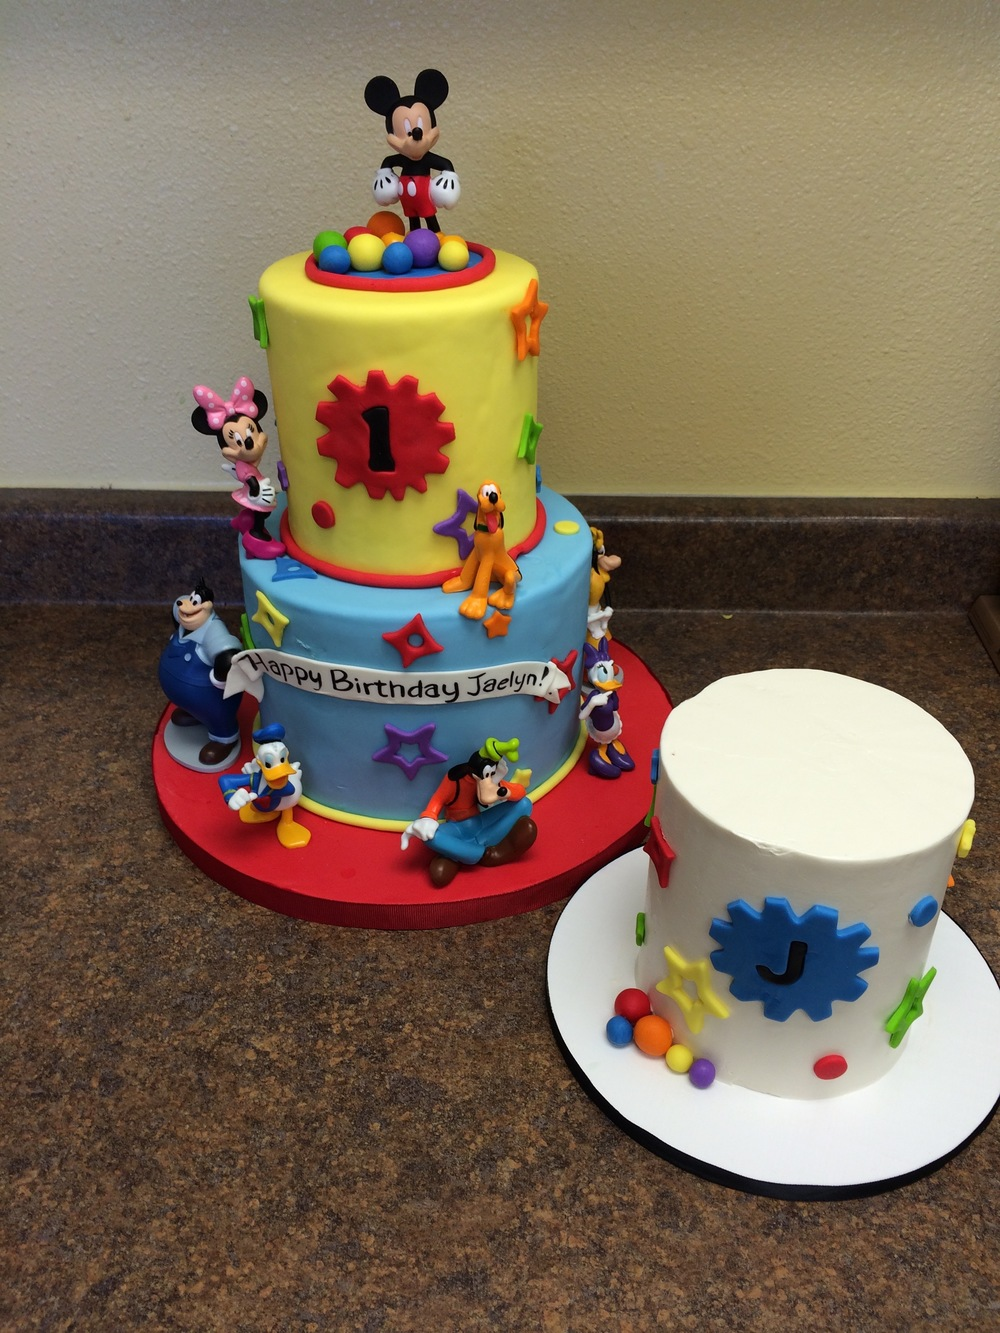 Mickey Mouse Birthday Cake | Sugar Lab Bake Shop